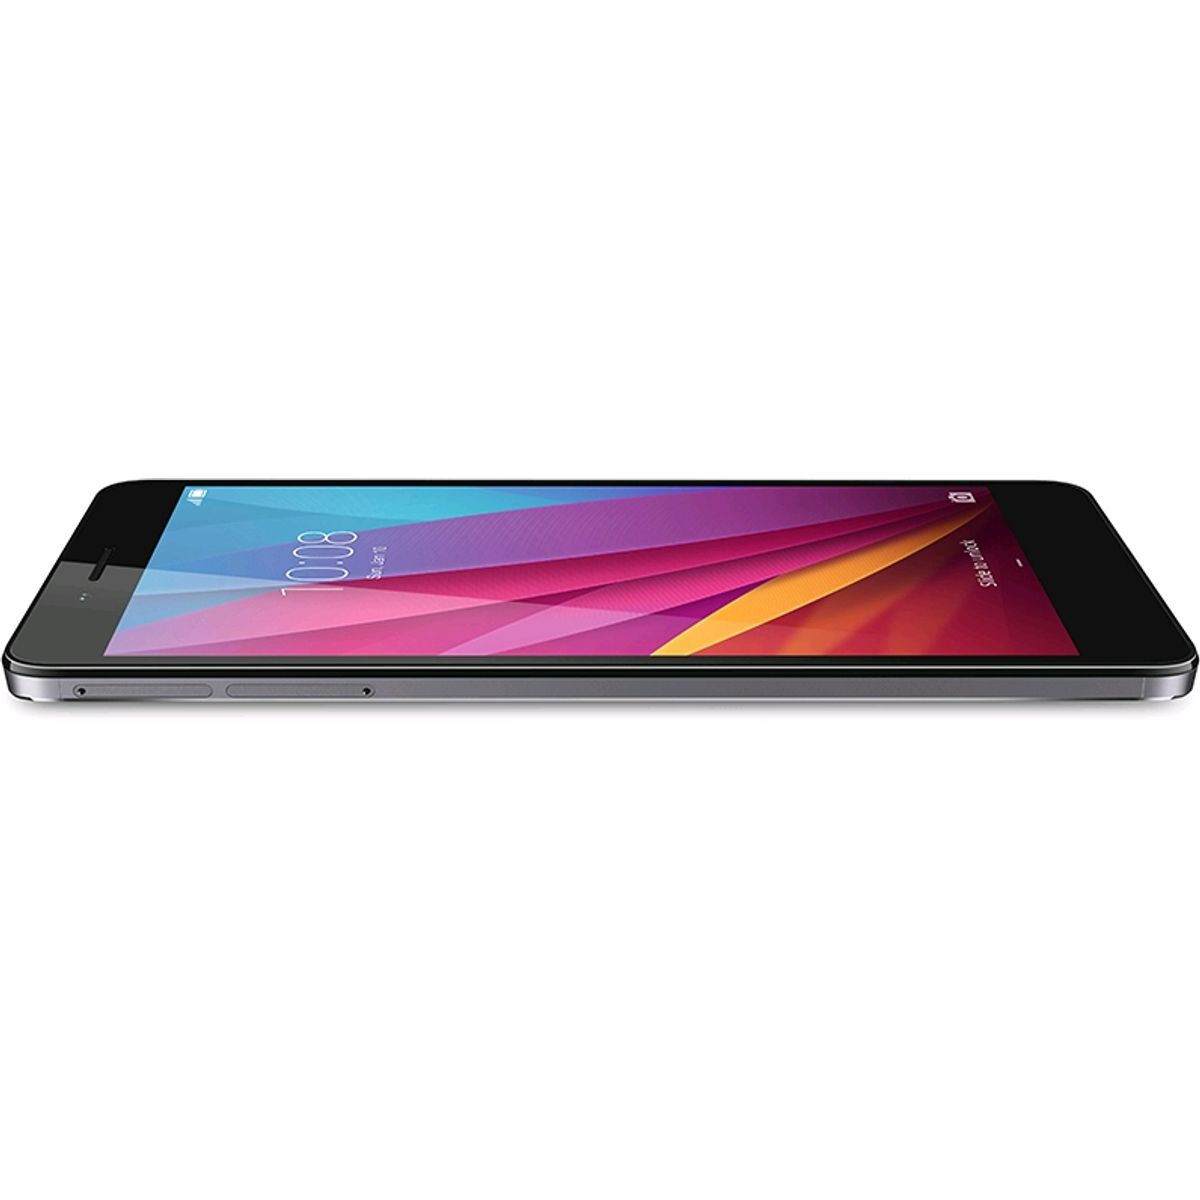 Honor 5X Smartphone 13,97cm (5,5 Zoll)